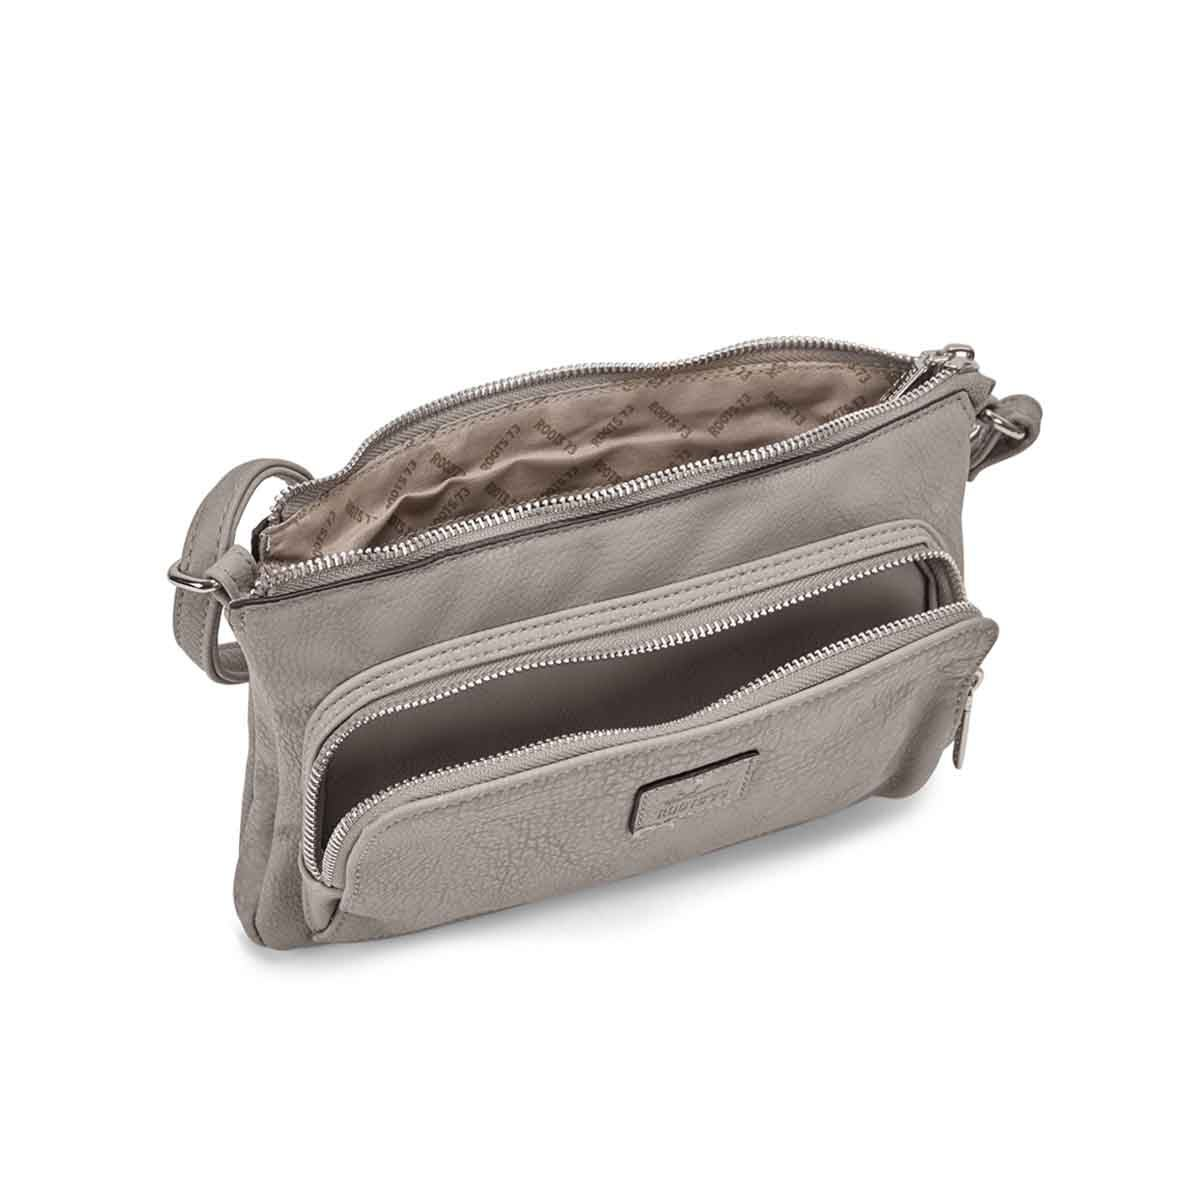 Lds Roots73 grey east/west crossbody